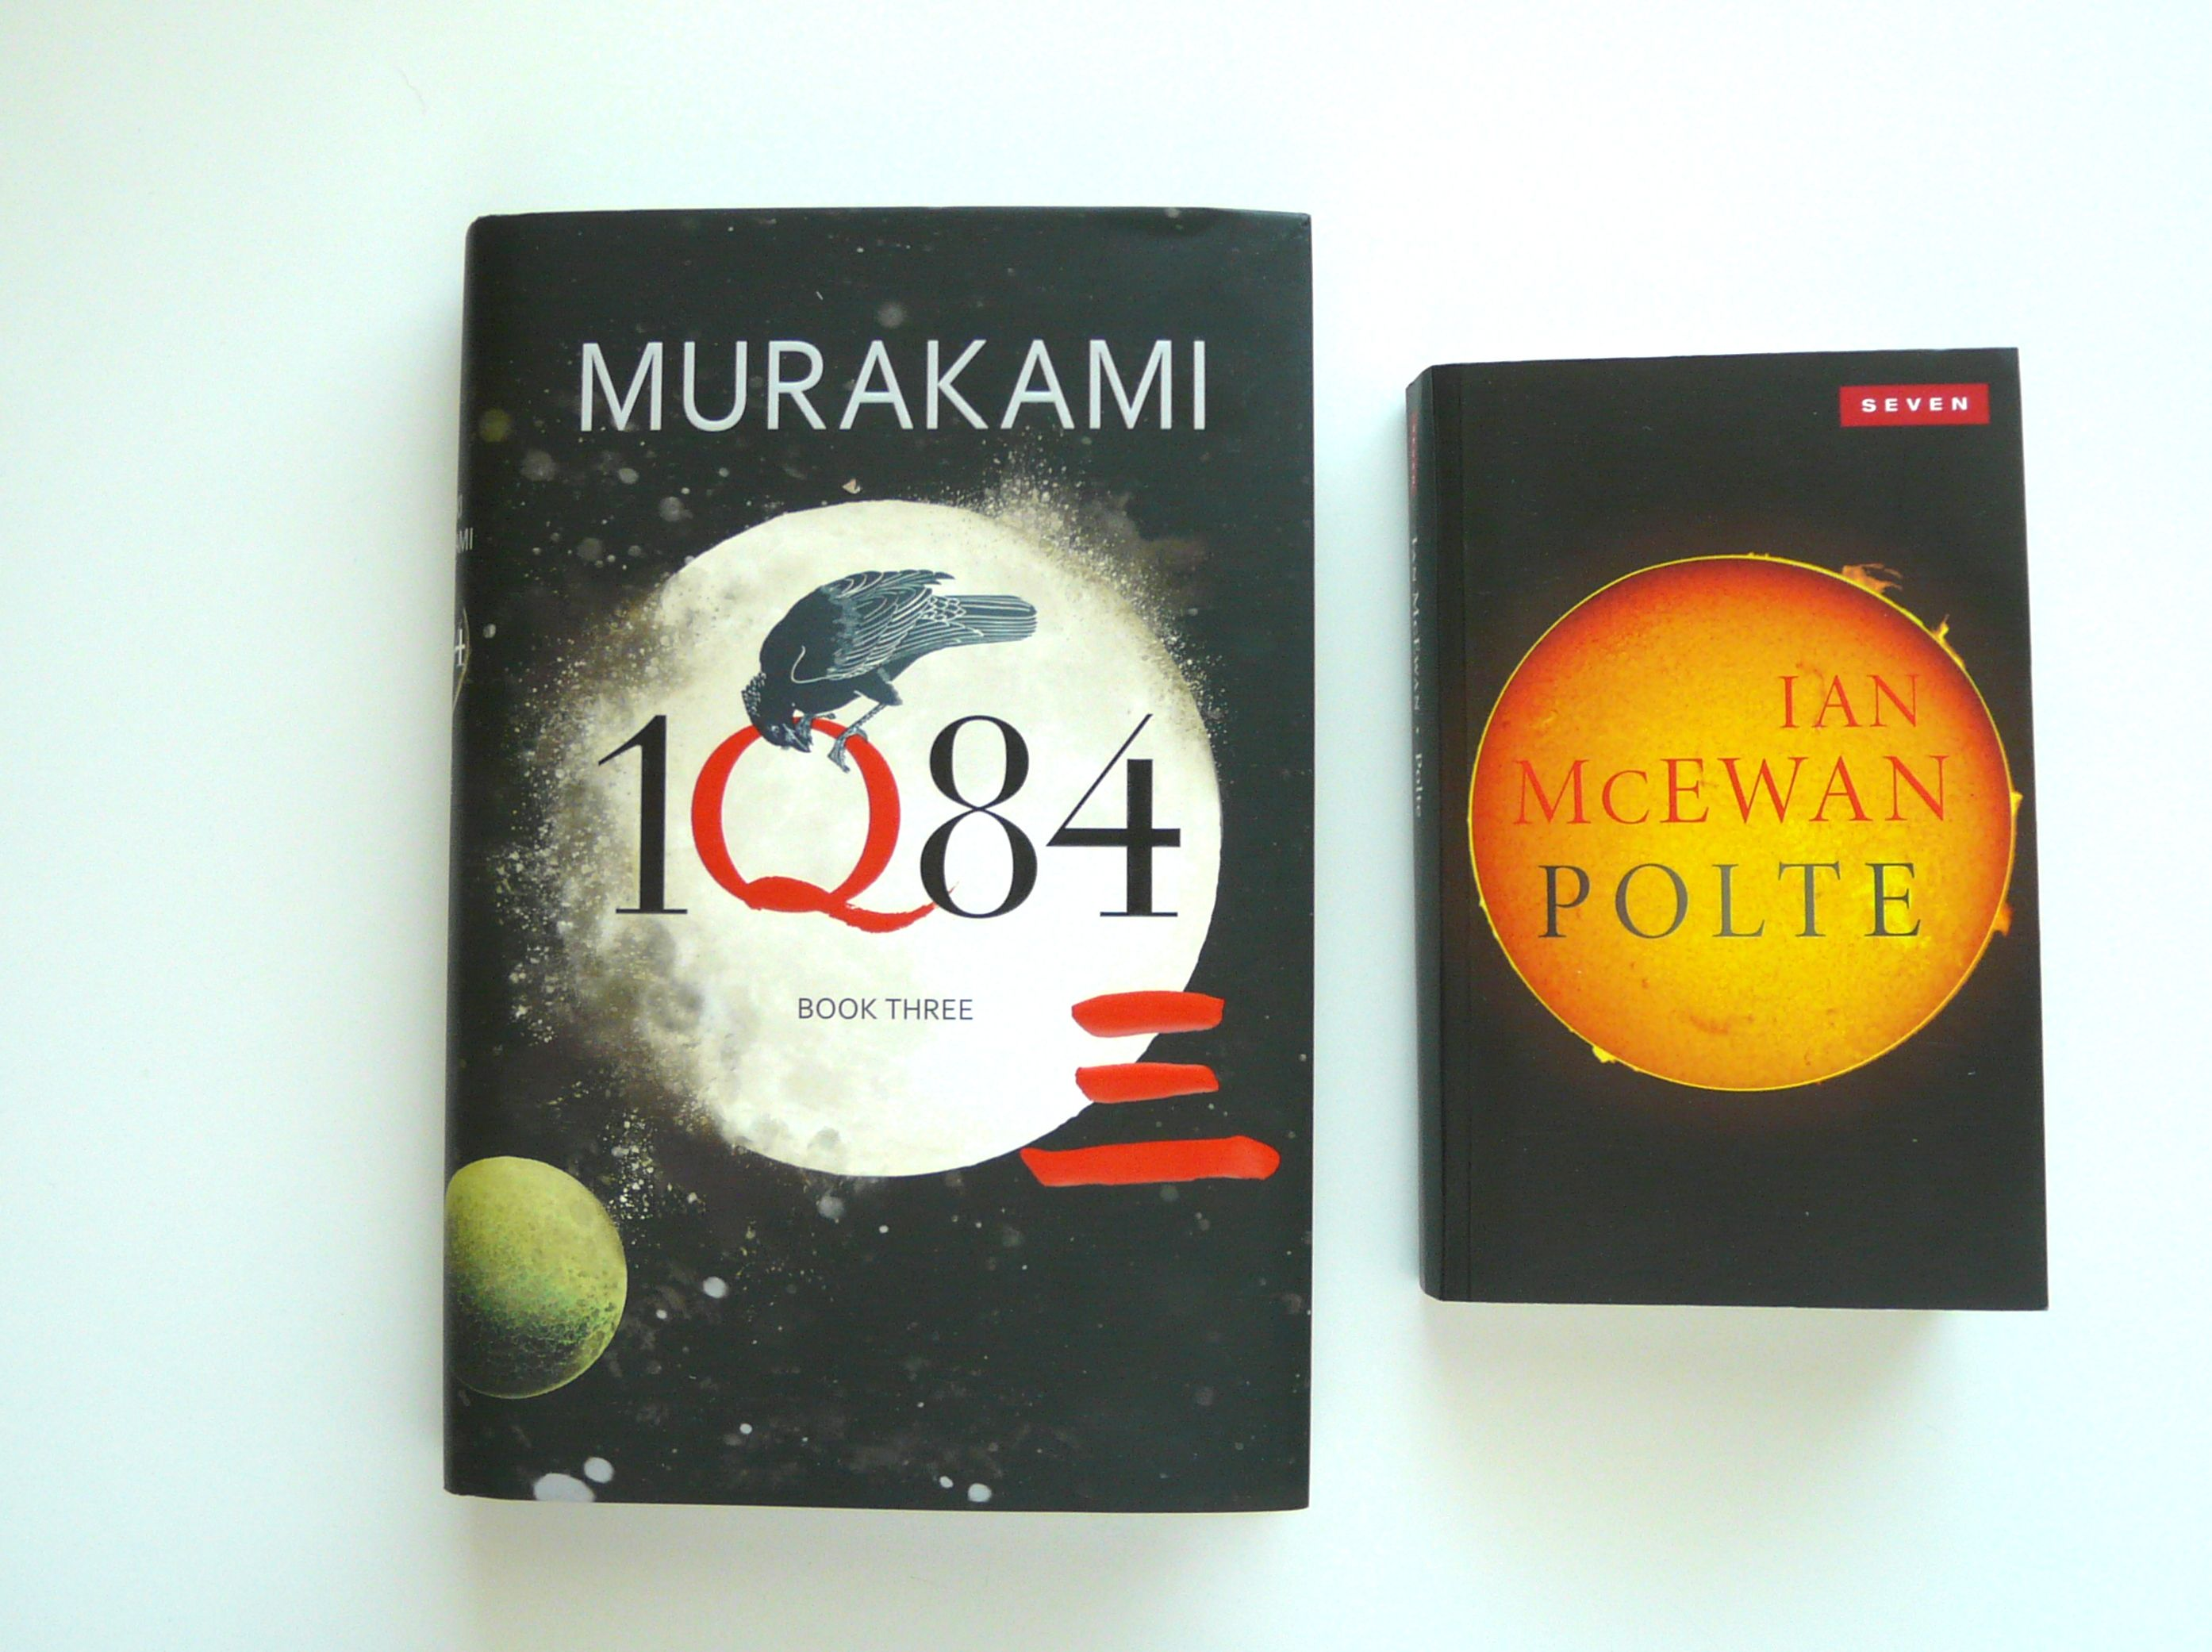 Similar visual forms in current book covers